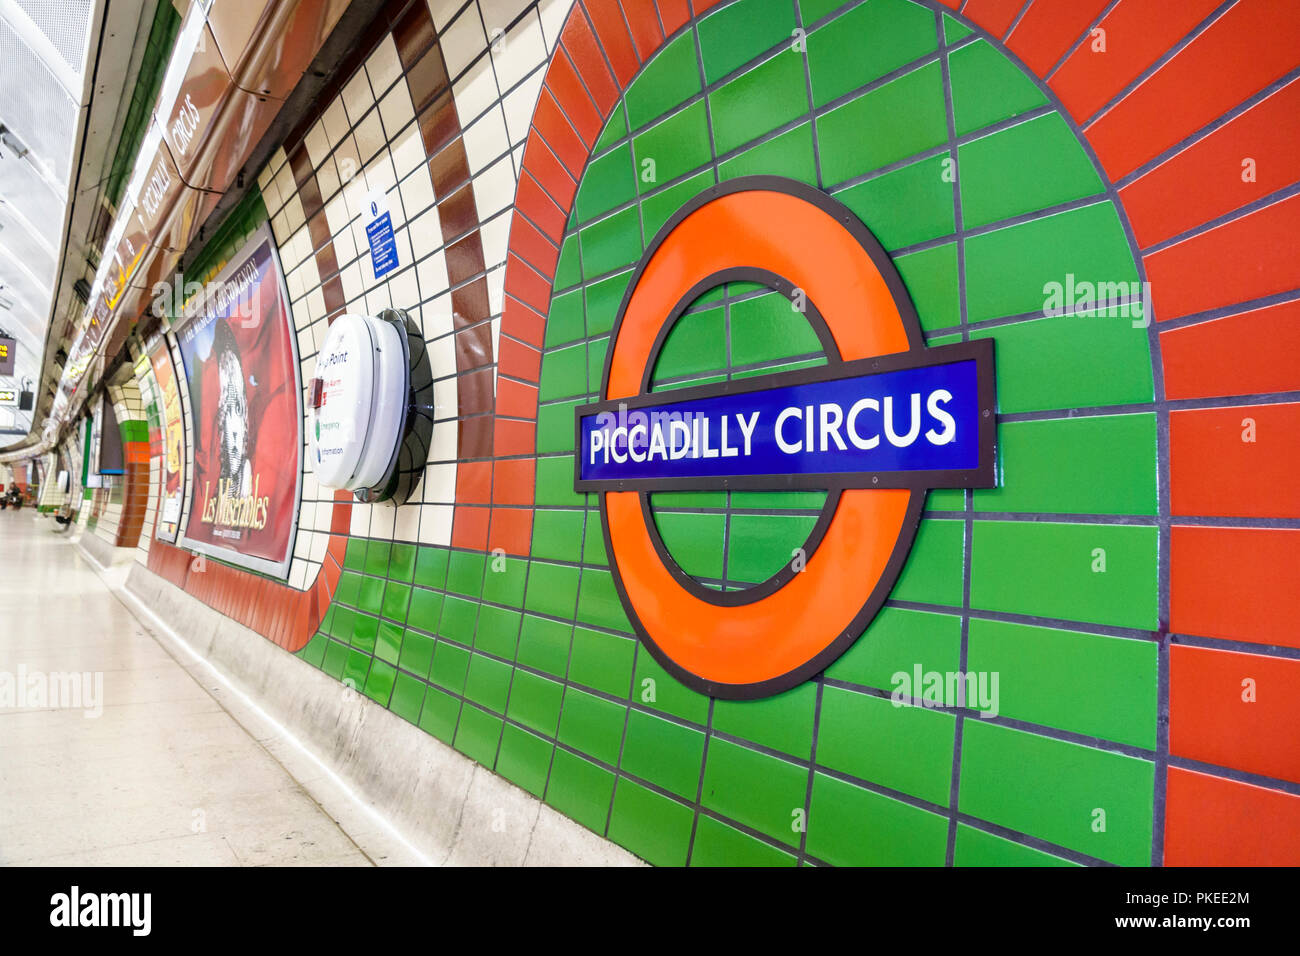 London England Great Britain United Kingdom Underground Tube public transportation system rapid transit Picadilly Circus Line station platform subway - Stock Image